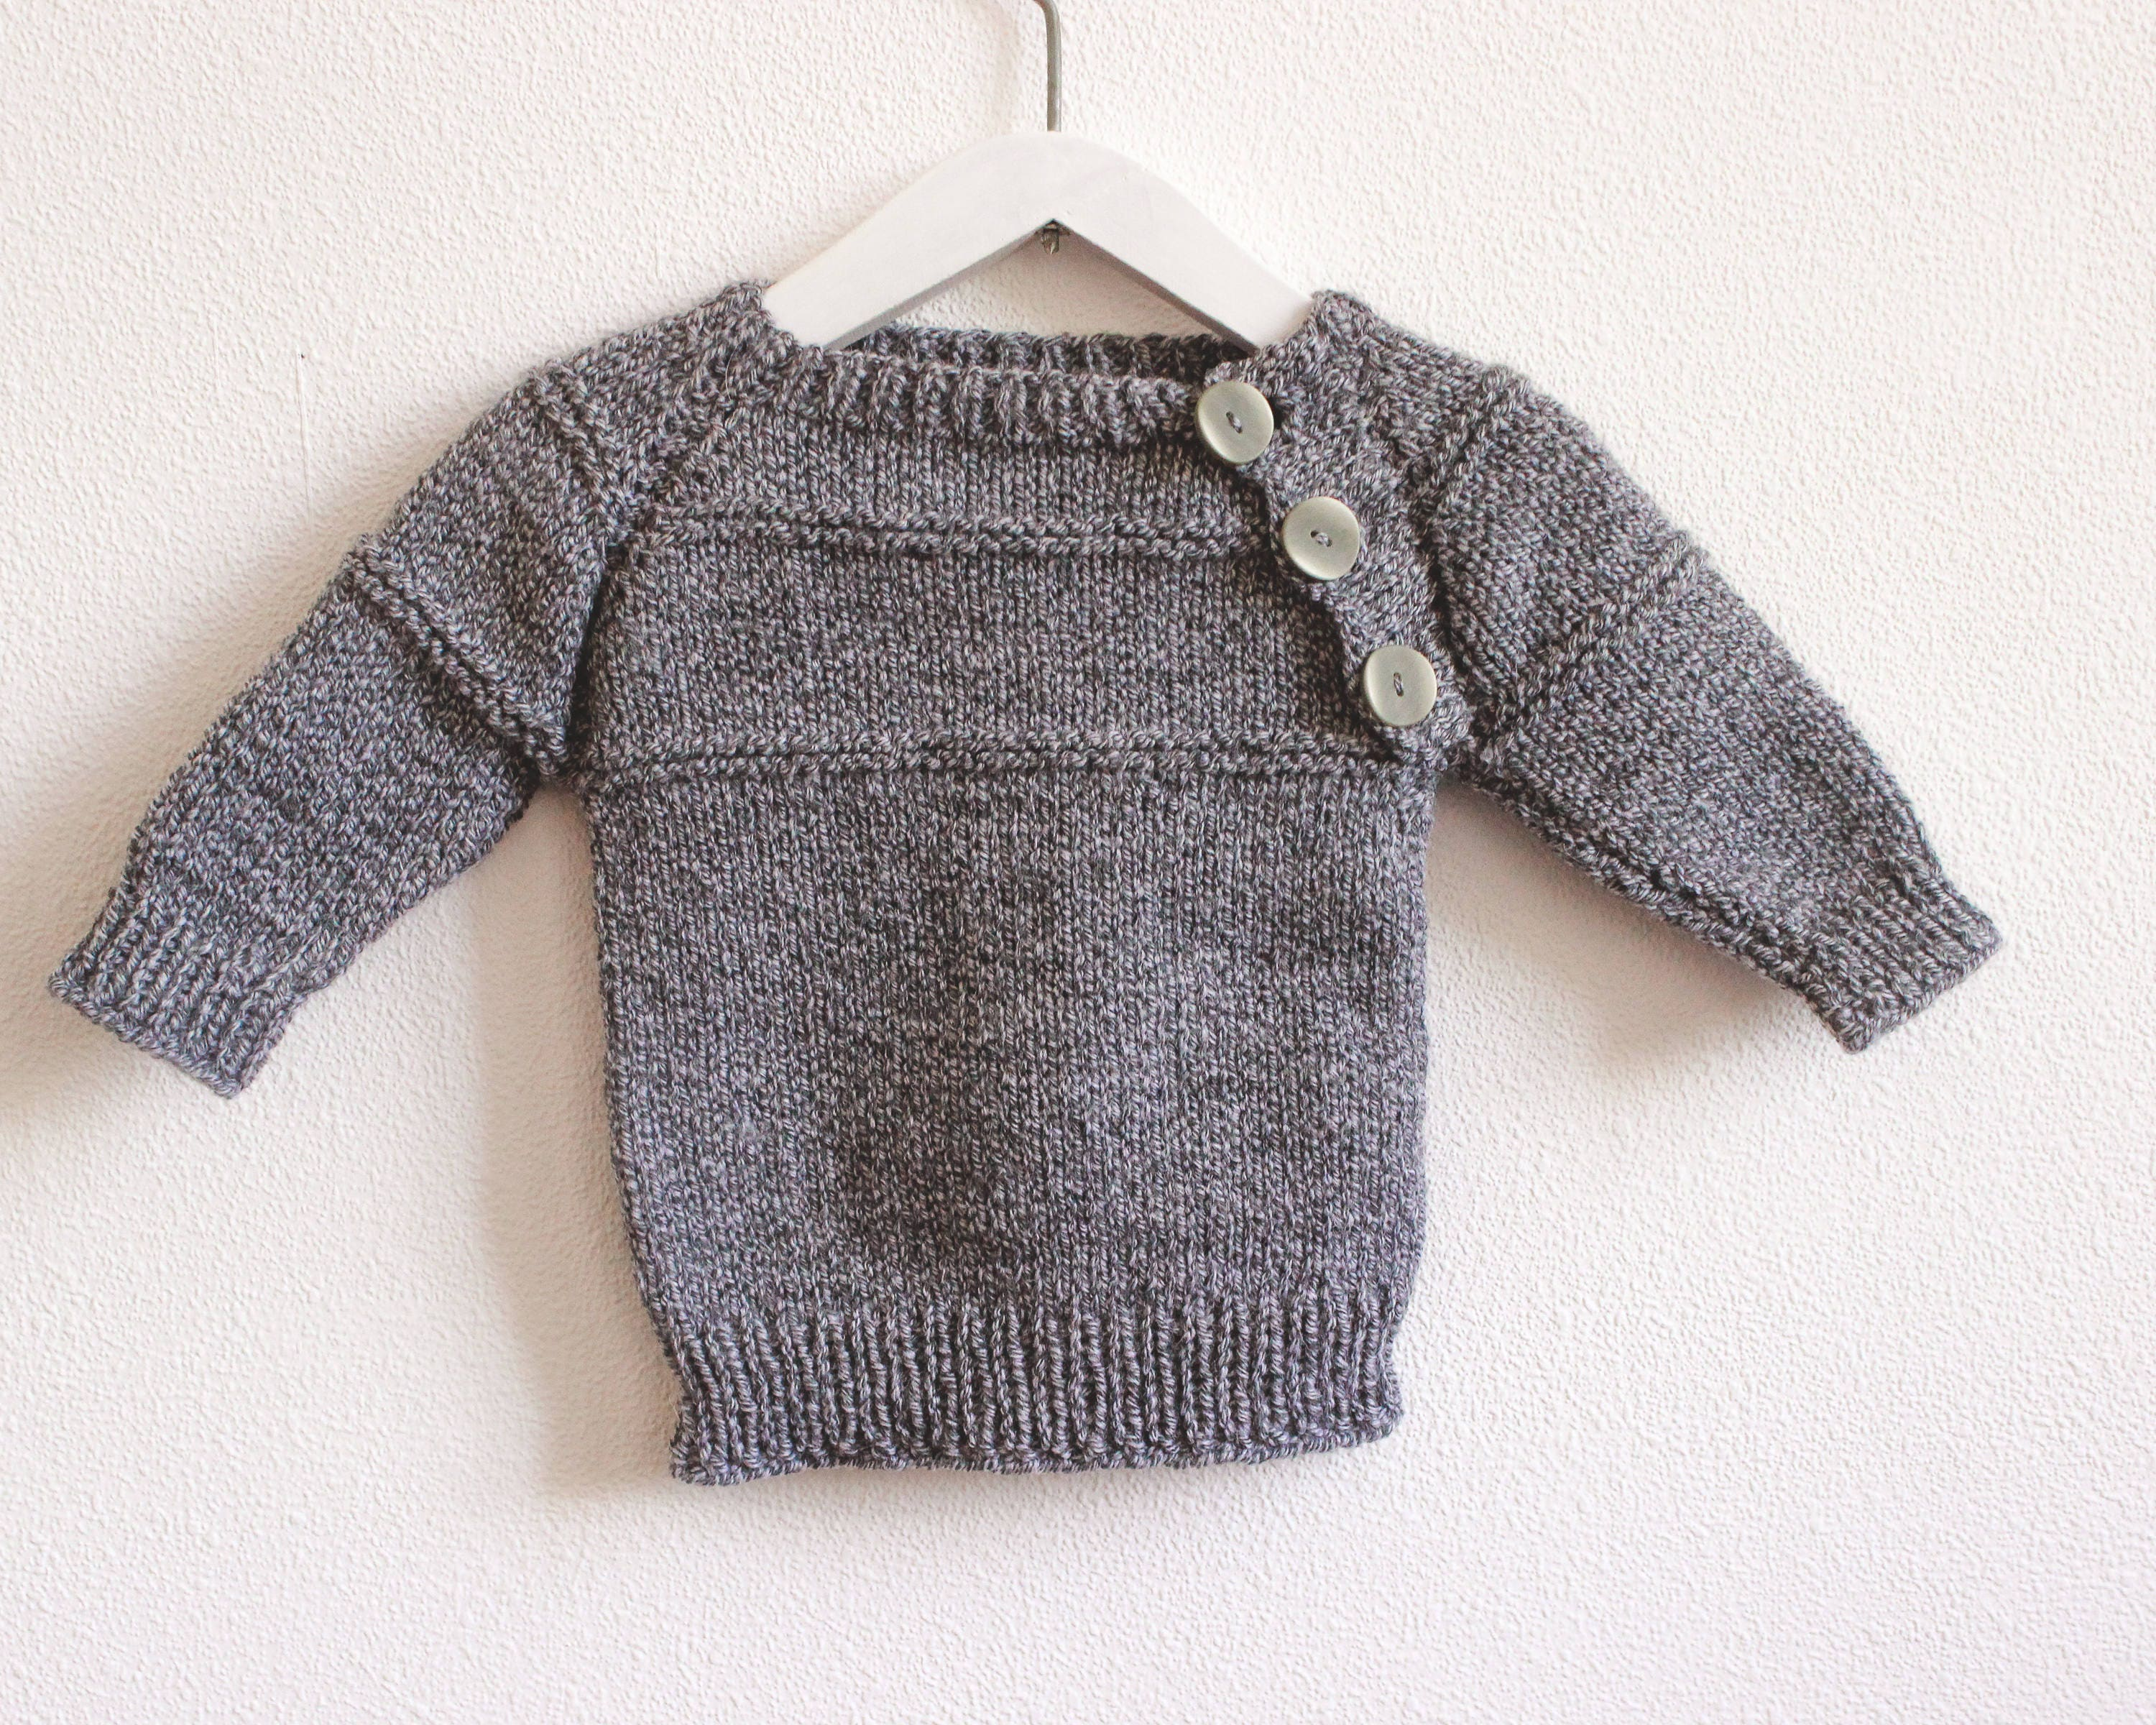 Baby Boy Clothes Knitted Sweater Warm Winter Jumper Handmade Baby